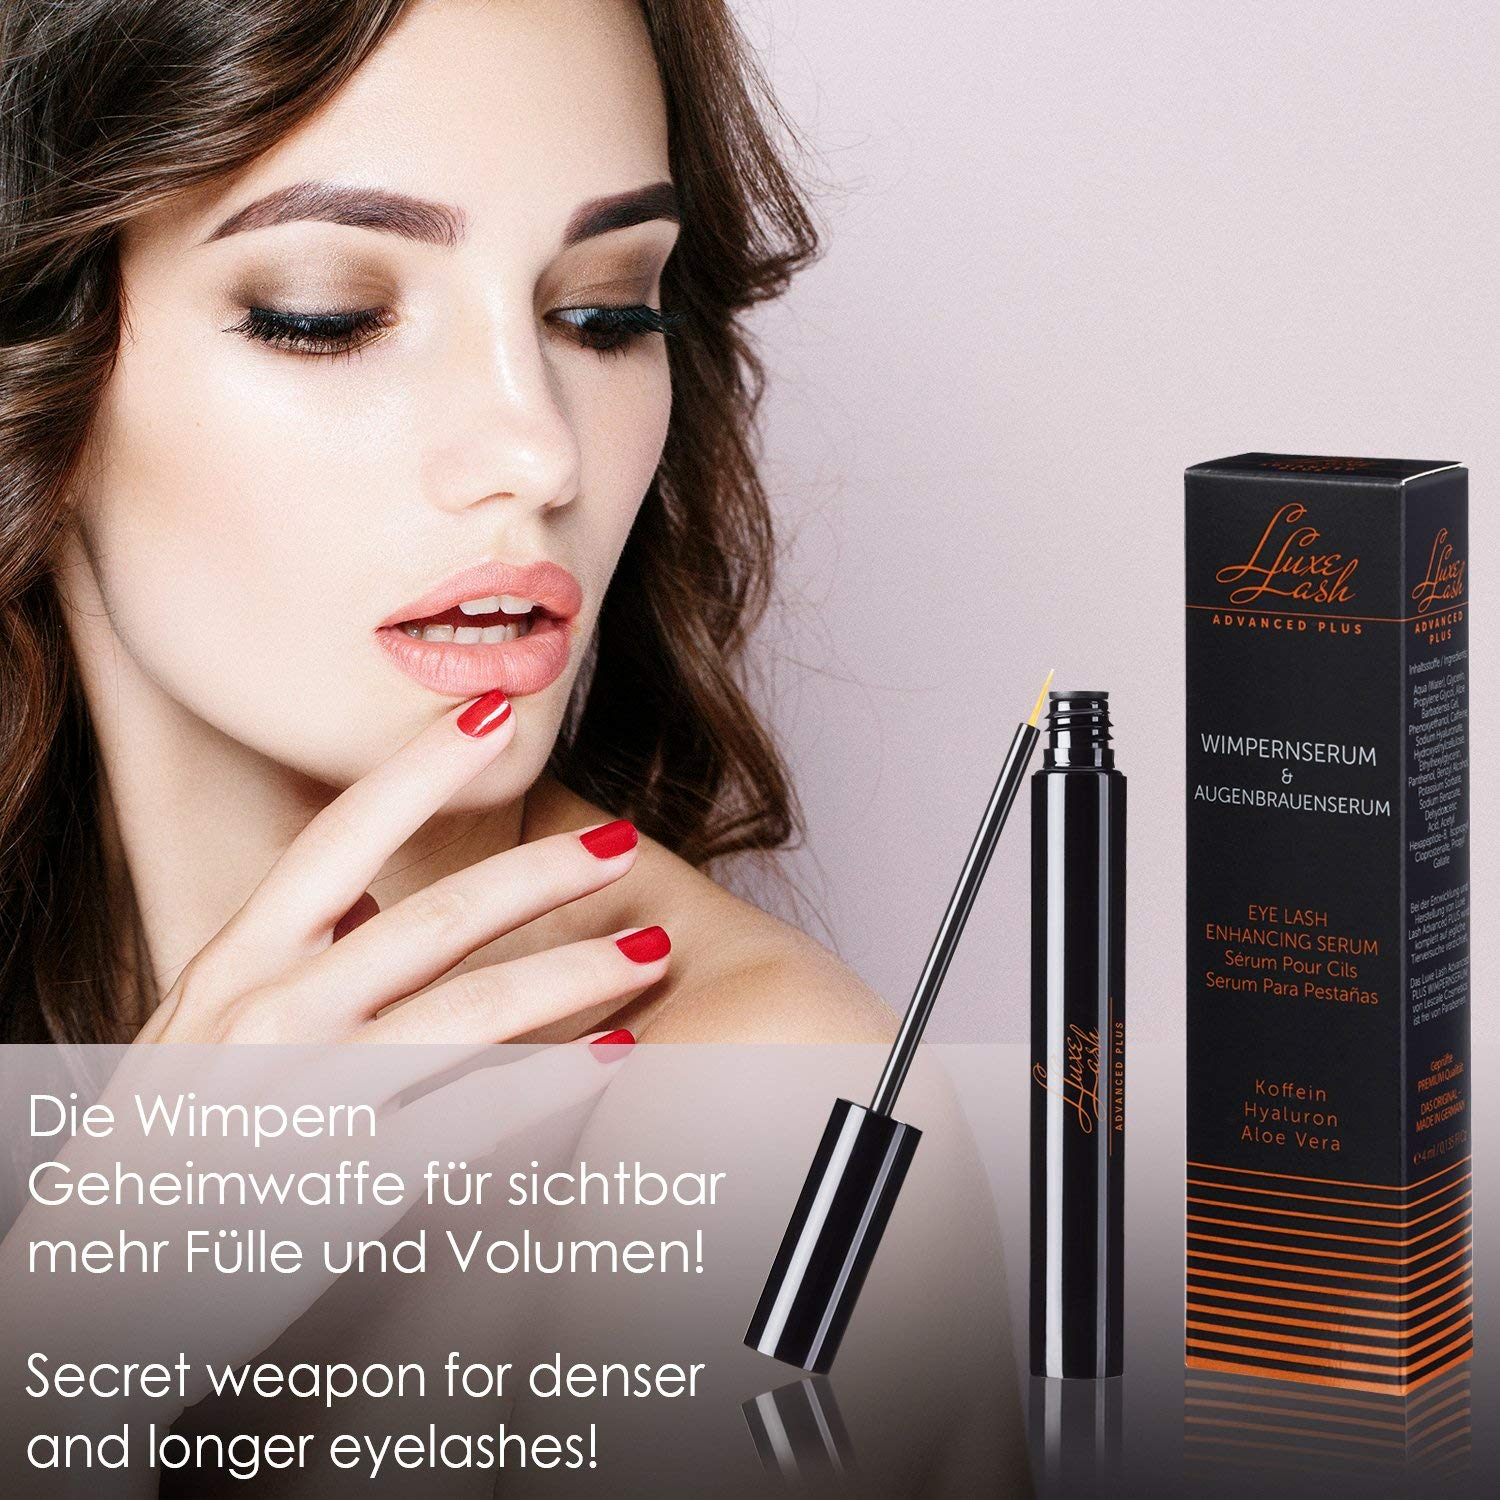 Eyelash Growth Enhancer Serum and Conditioner 4 milliliters by Luxe Lash by Lescale (Image #9)